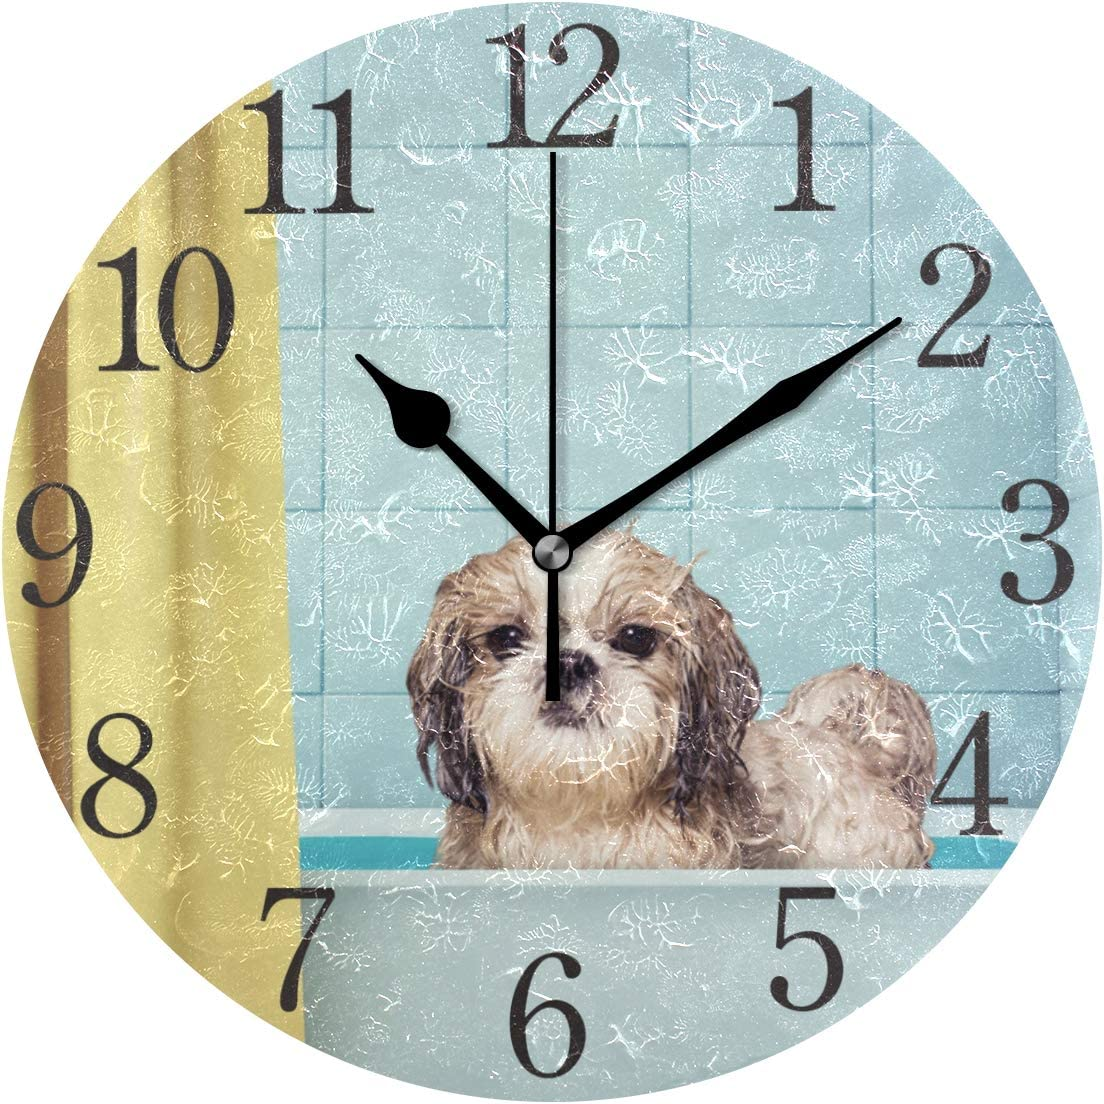 Wall Clock Arabic Numerals Design Cute Wet Shitzu Dog Round Wall Clock for Living Room Bathroom Home Decorative